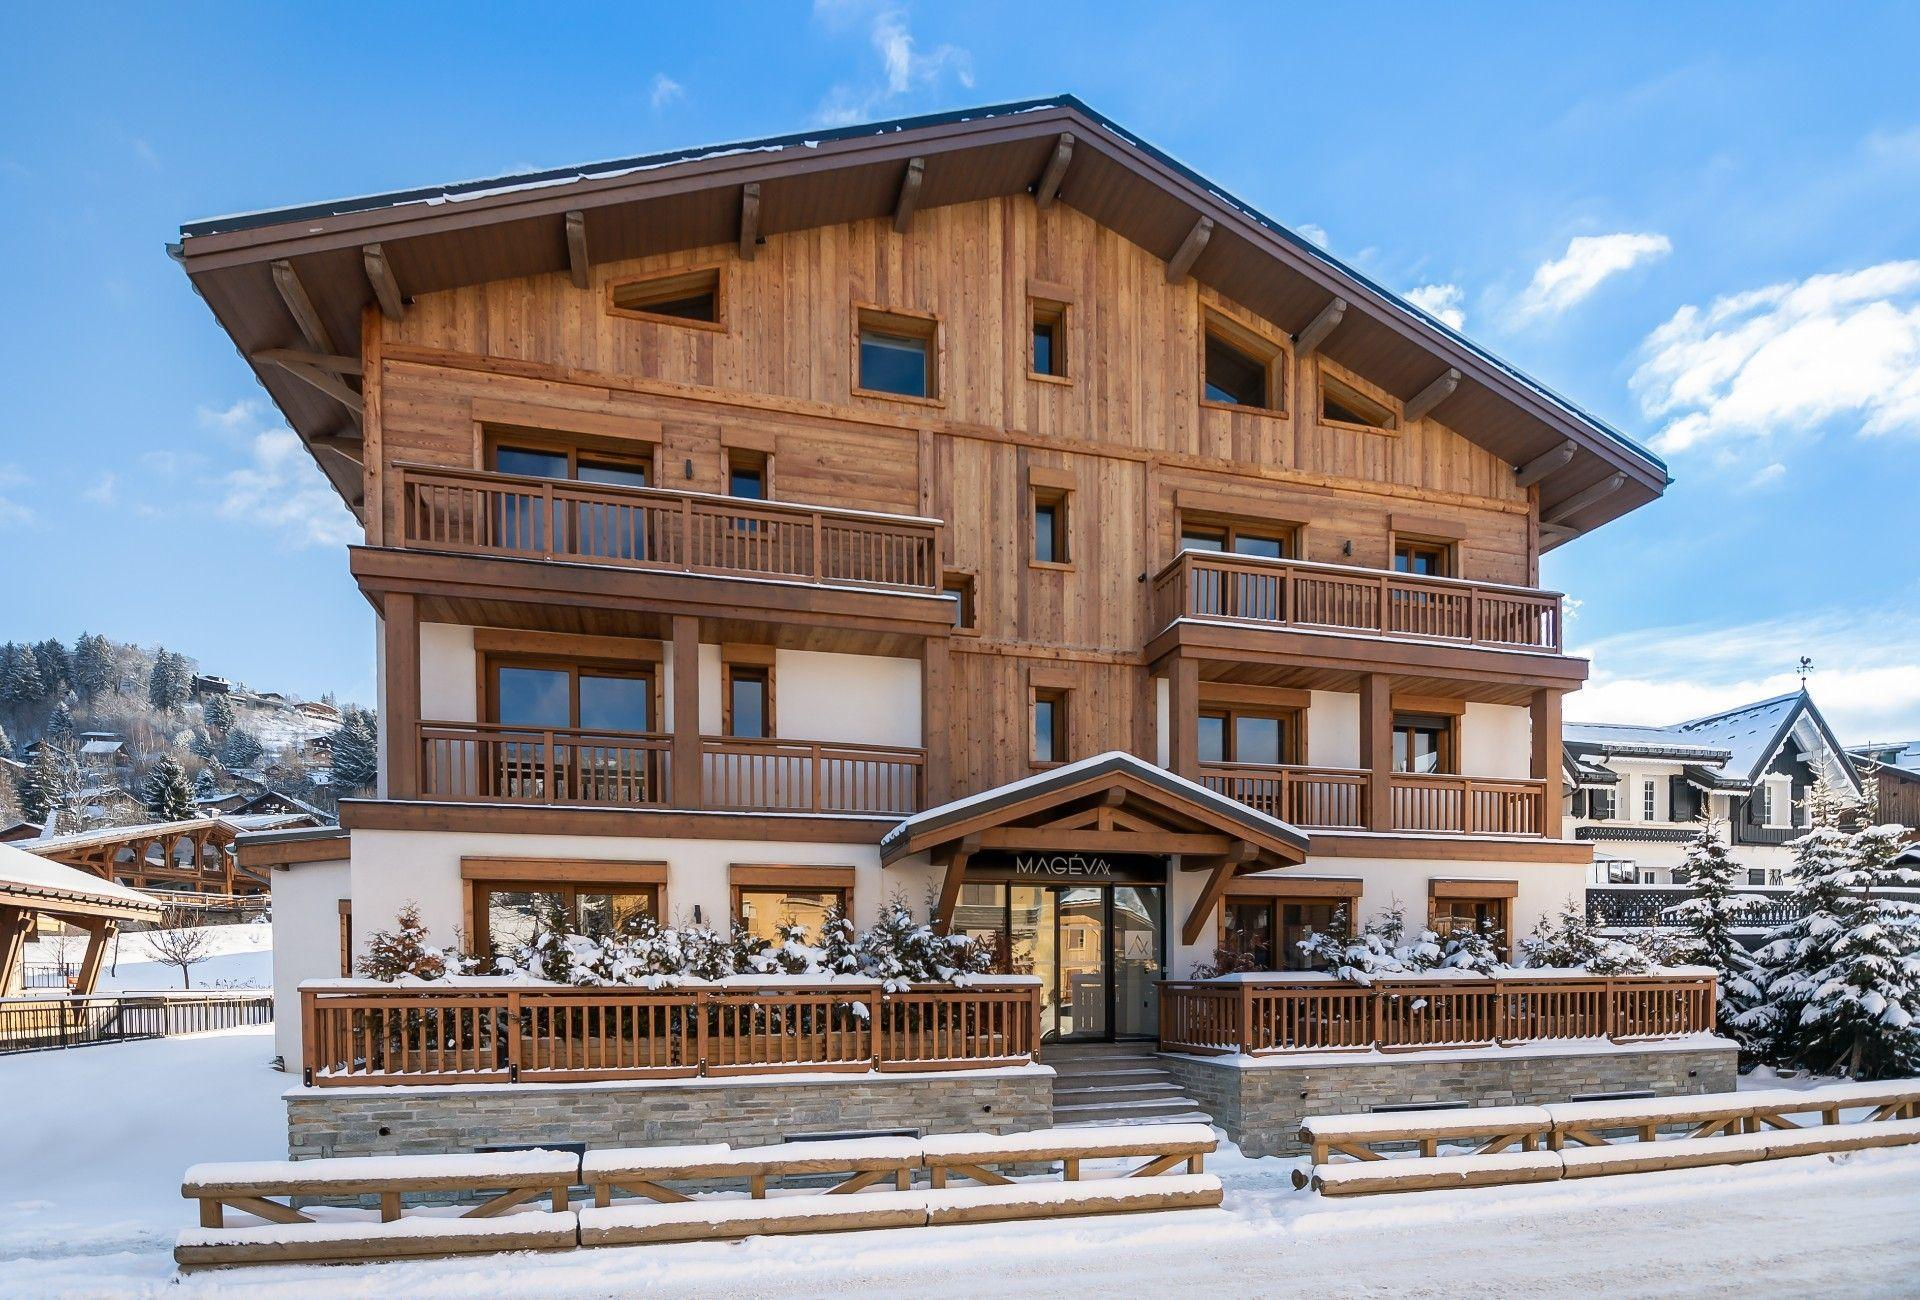 FLOOR-THROUGH APARTMENT IN NEW RESIDENCE CLOSE TO THE CENTER OF MEGÈVE